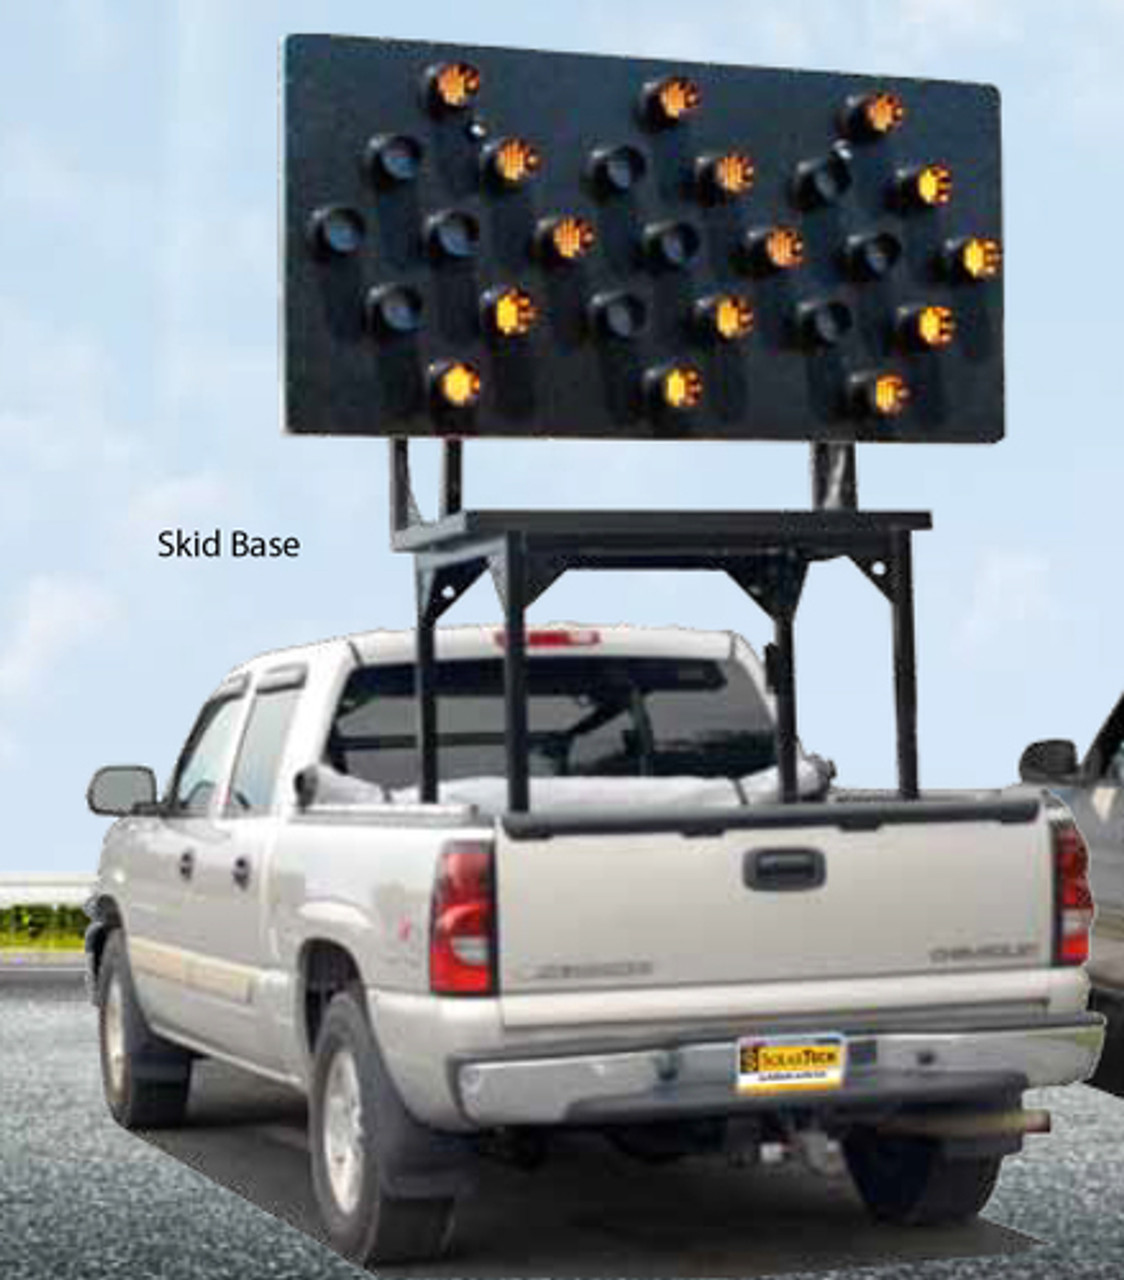 Solar Powered Vehicle Mount Silent Flashing Arrow Board Traffic Advisor Panel 25 LED Lamp by SolarTech